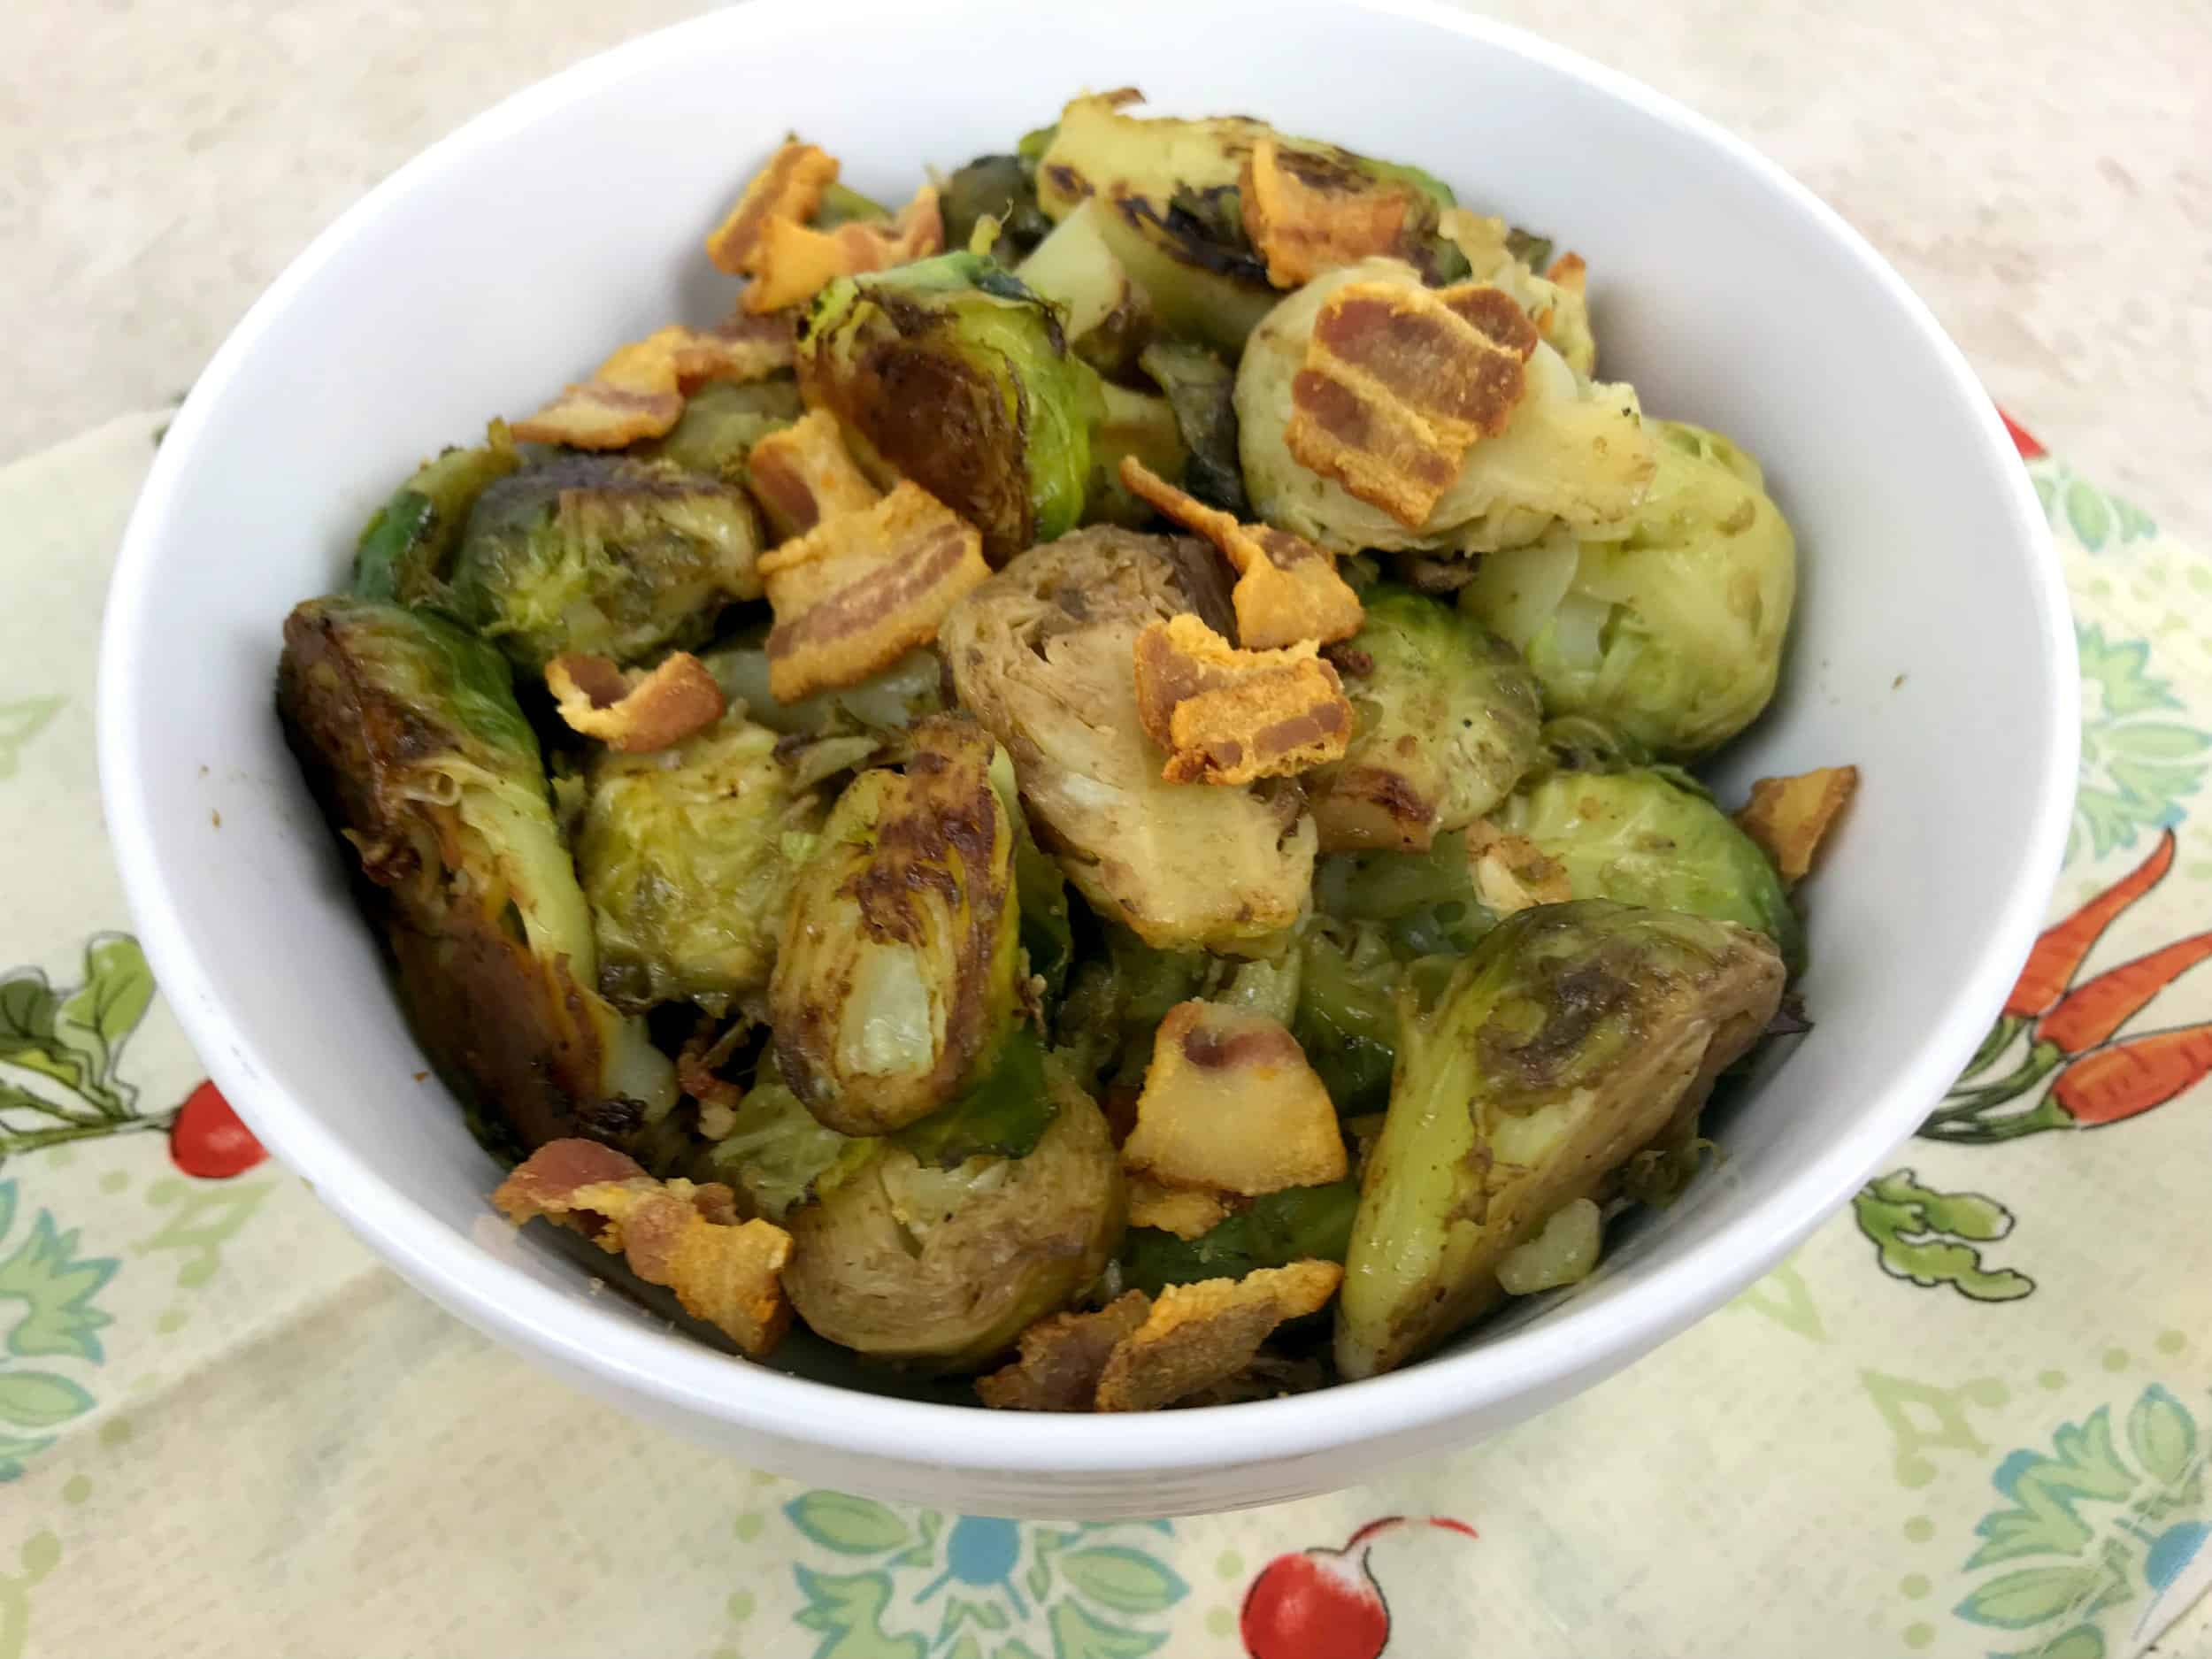 Seared bacon and brussel sprouts in a white bowl.